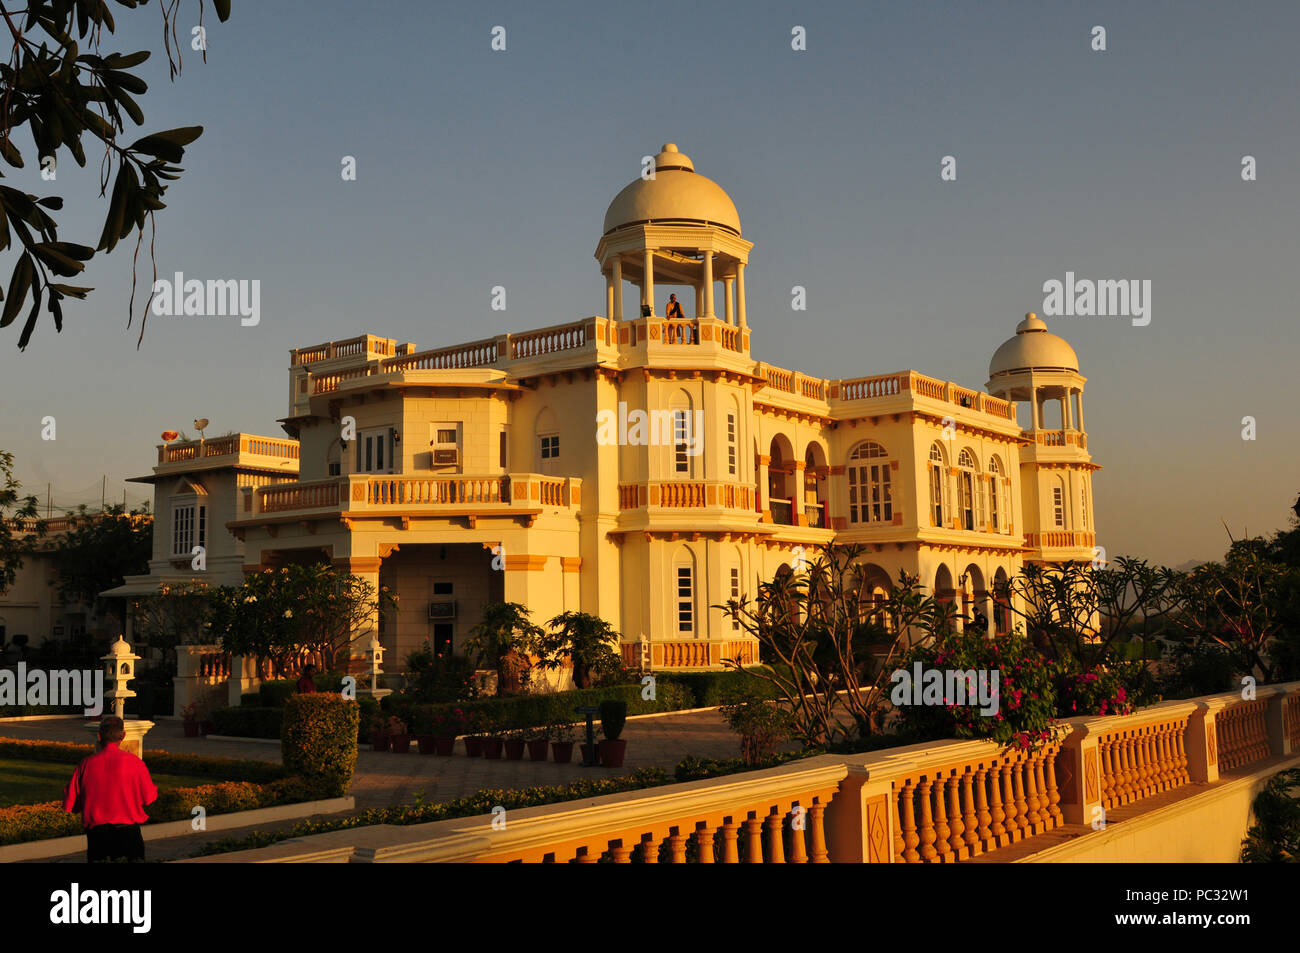 India: Stylish Balaram heritage hotel in Gujarat - Stock Image